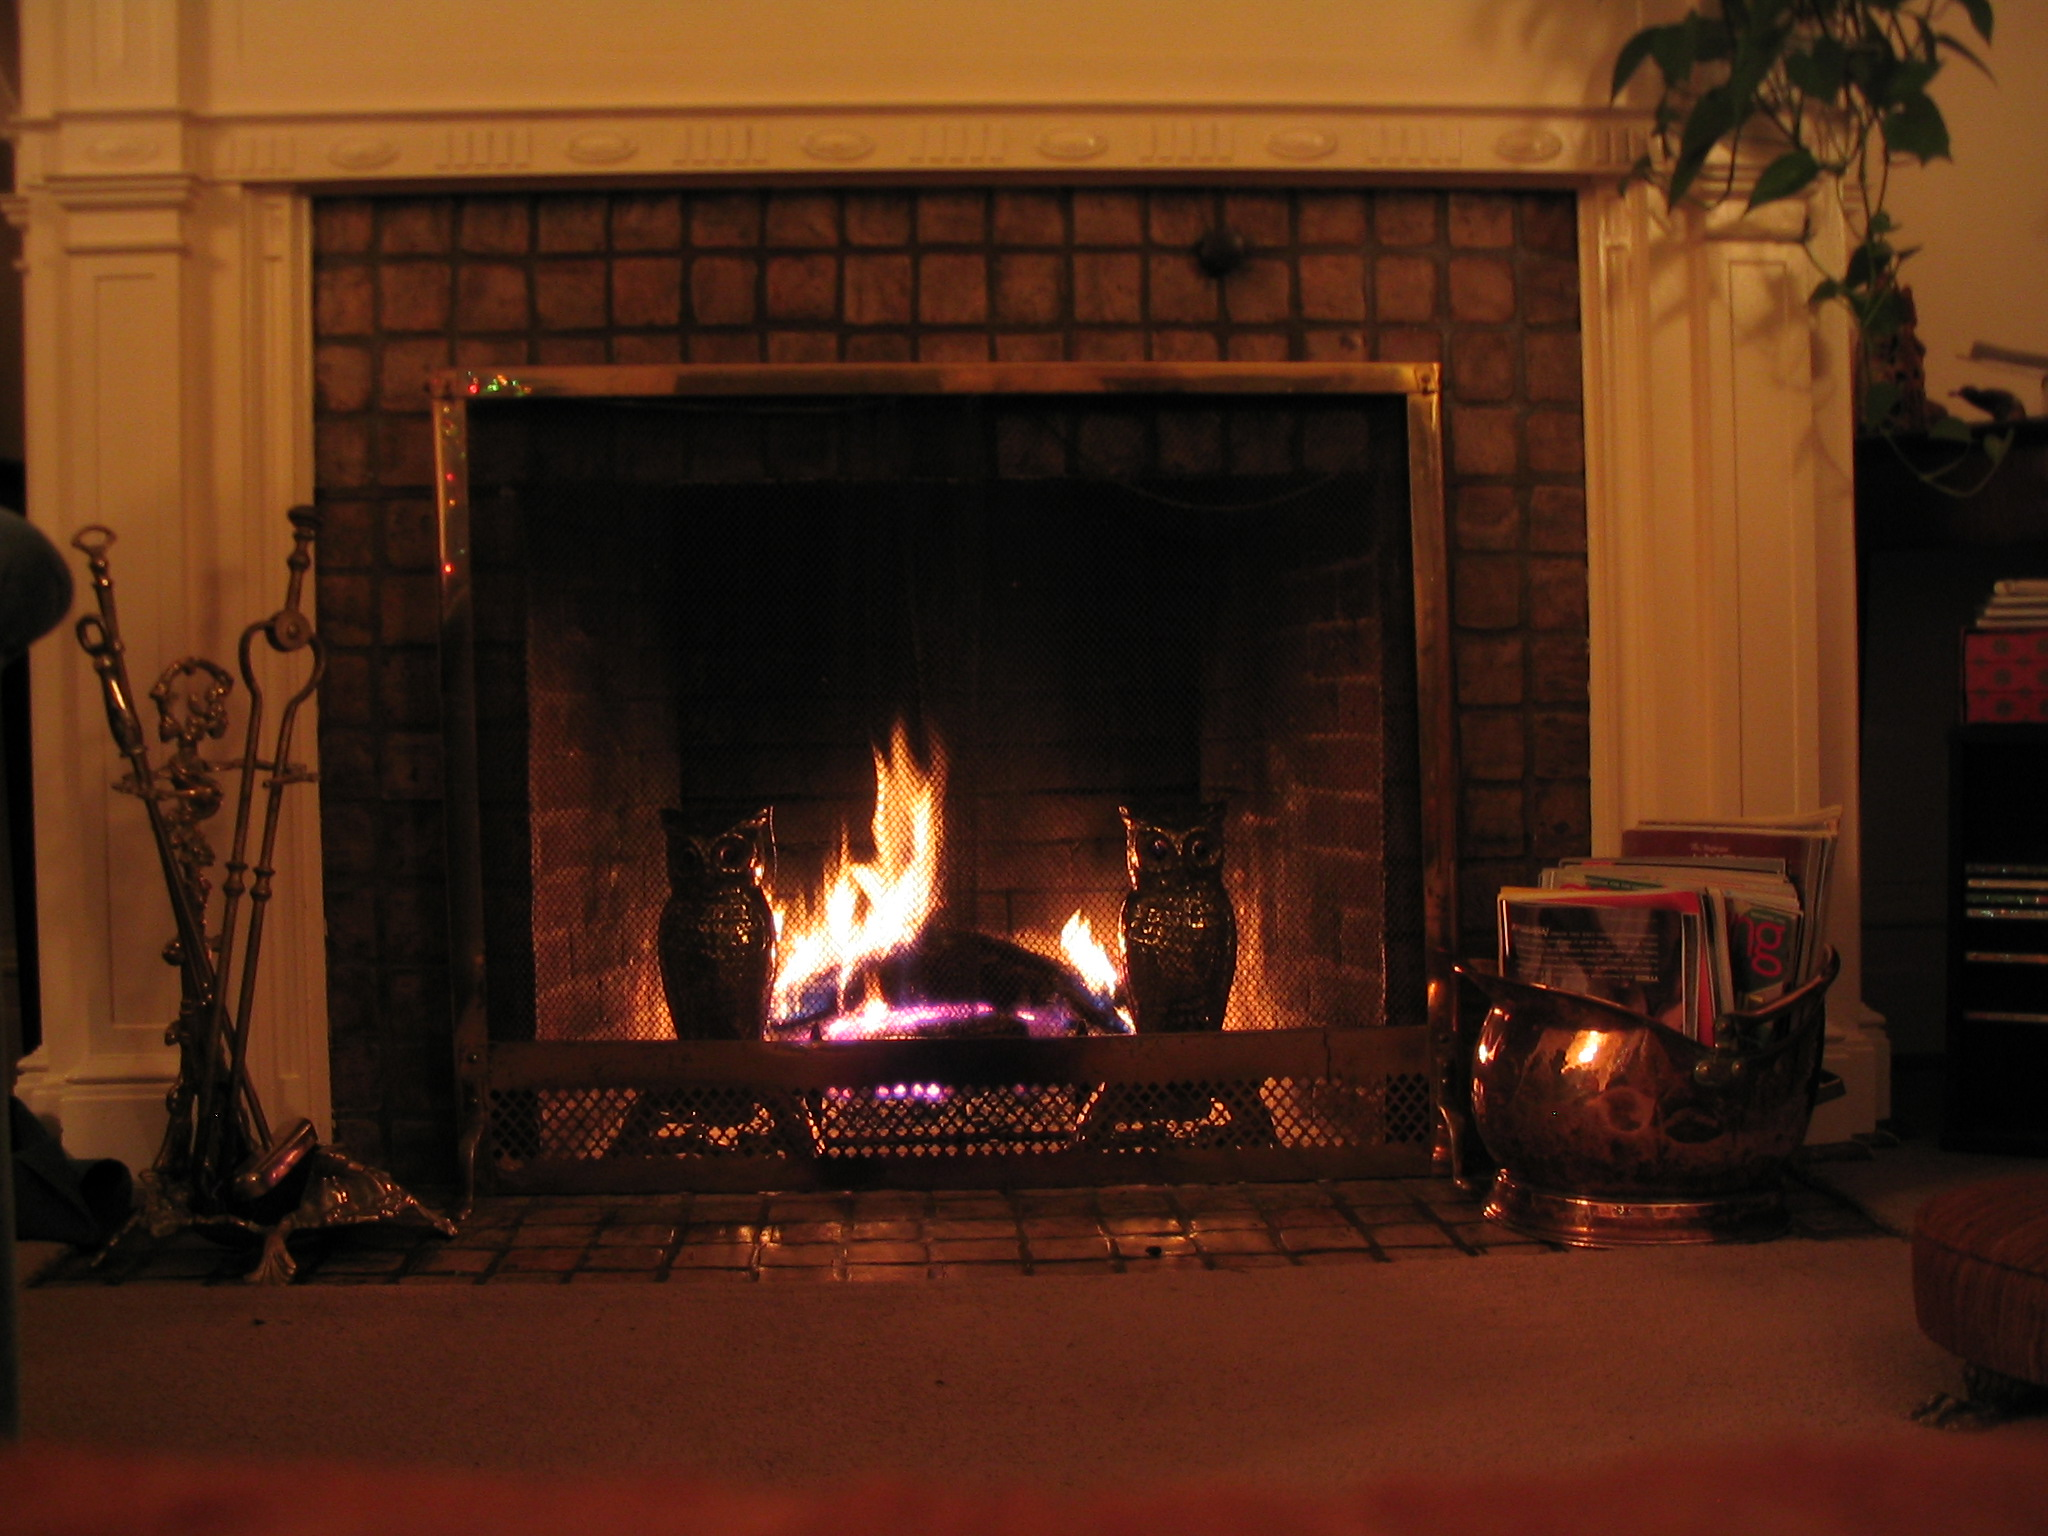 Dateithe Fireplace Rsjpg Wikipedia